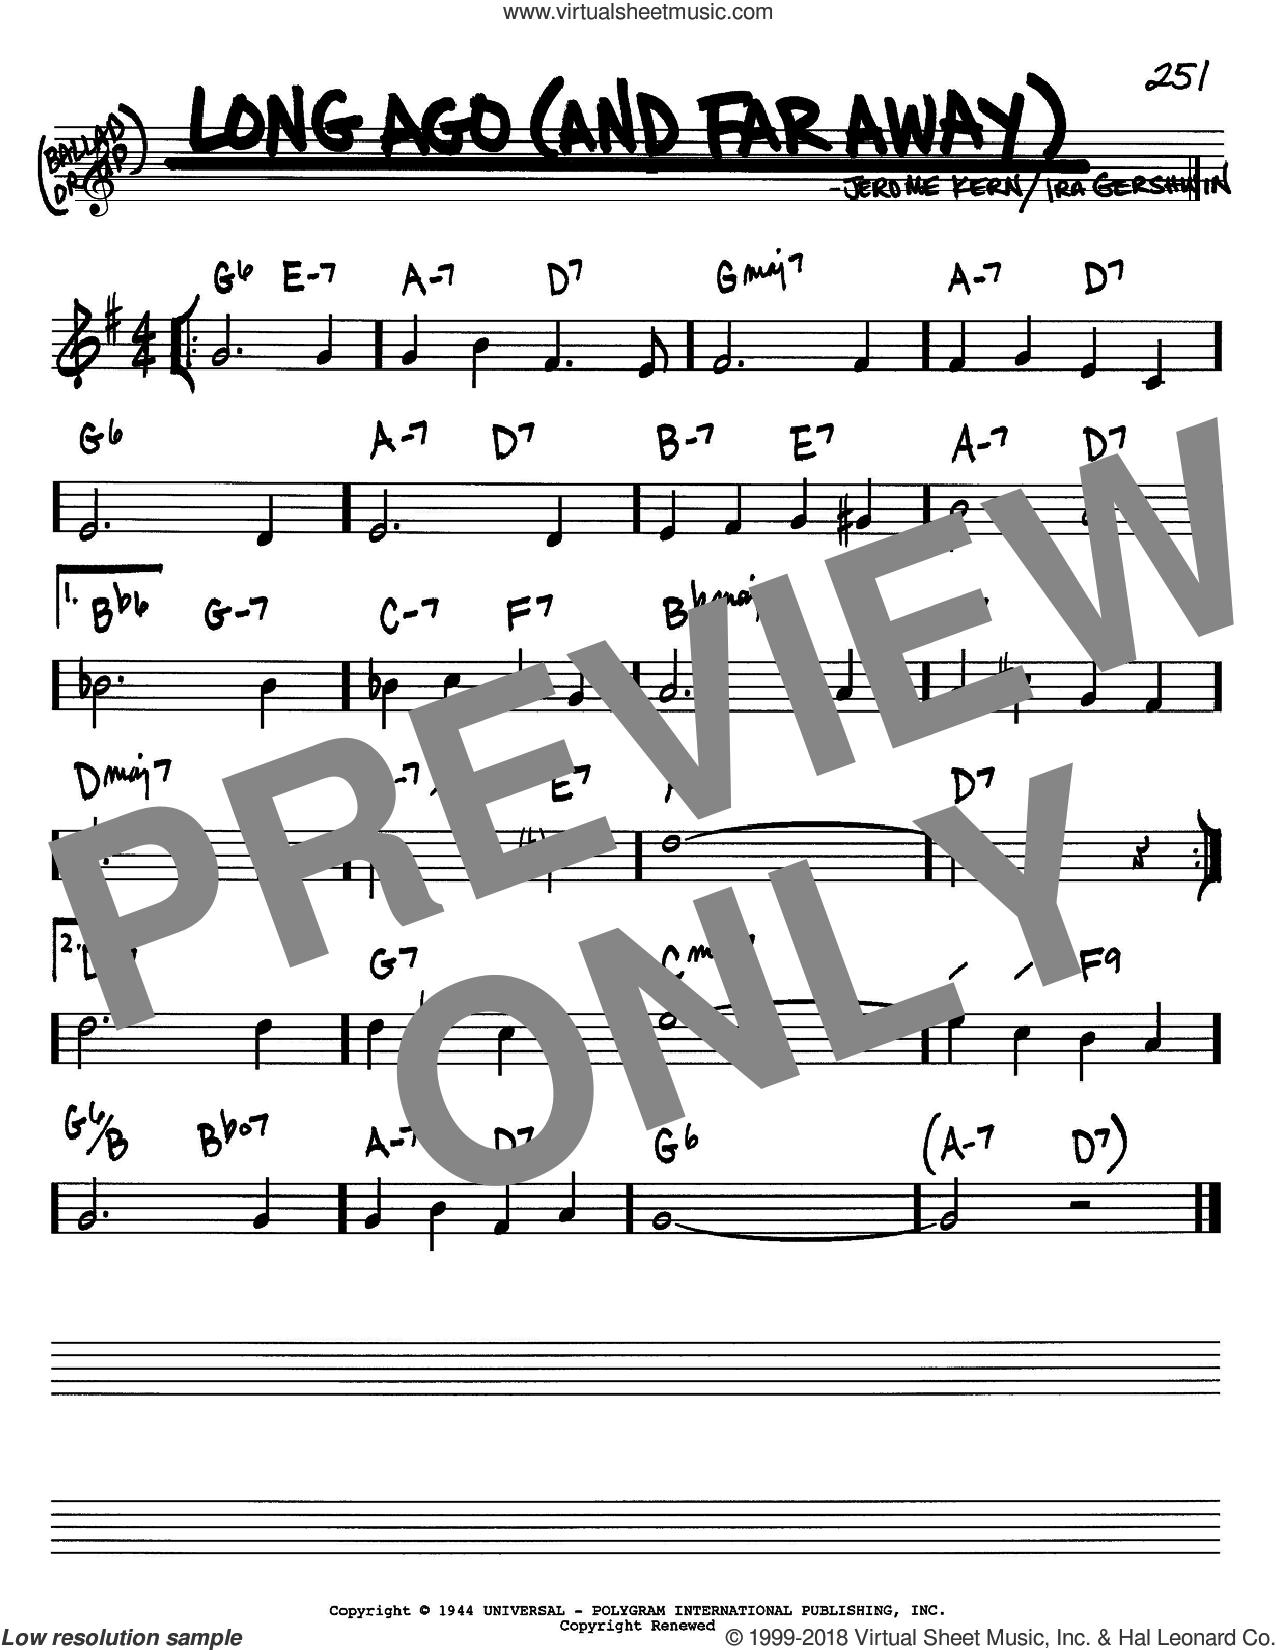 Long Ago (And Far Away) sheet music for voice and other instruments (Bb) by Jerome Kern and Ira Gershwin. Score Image Preview.